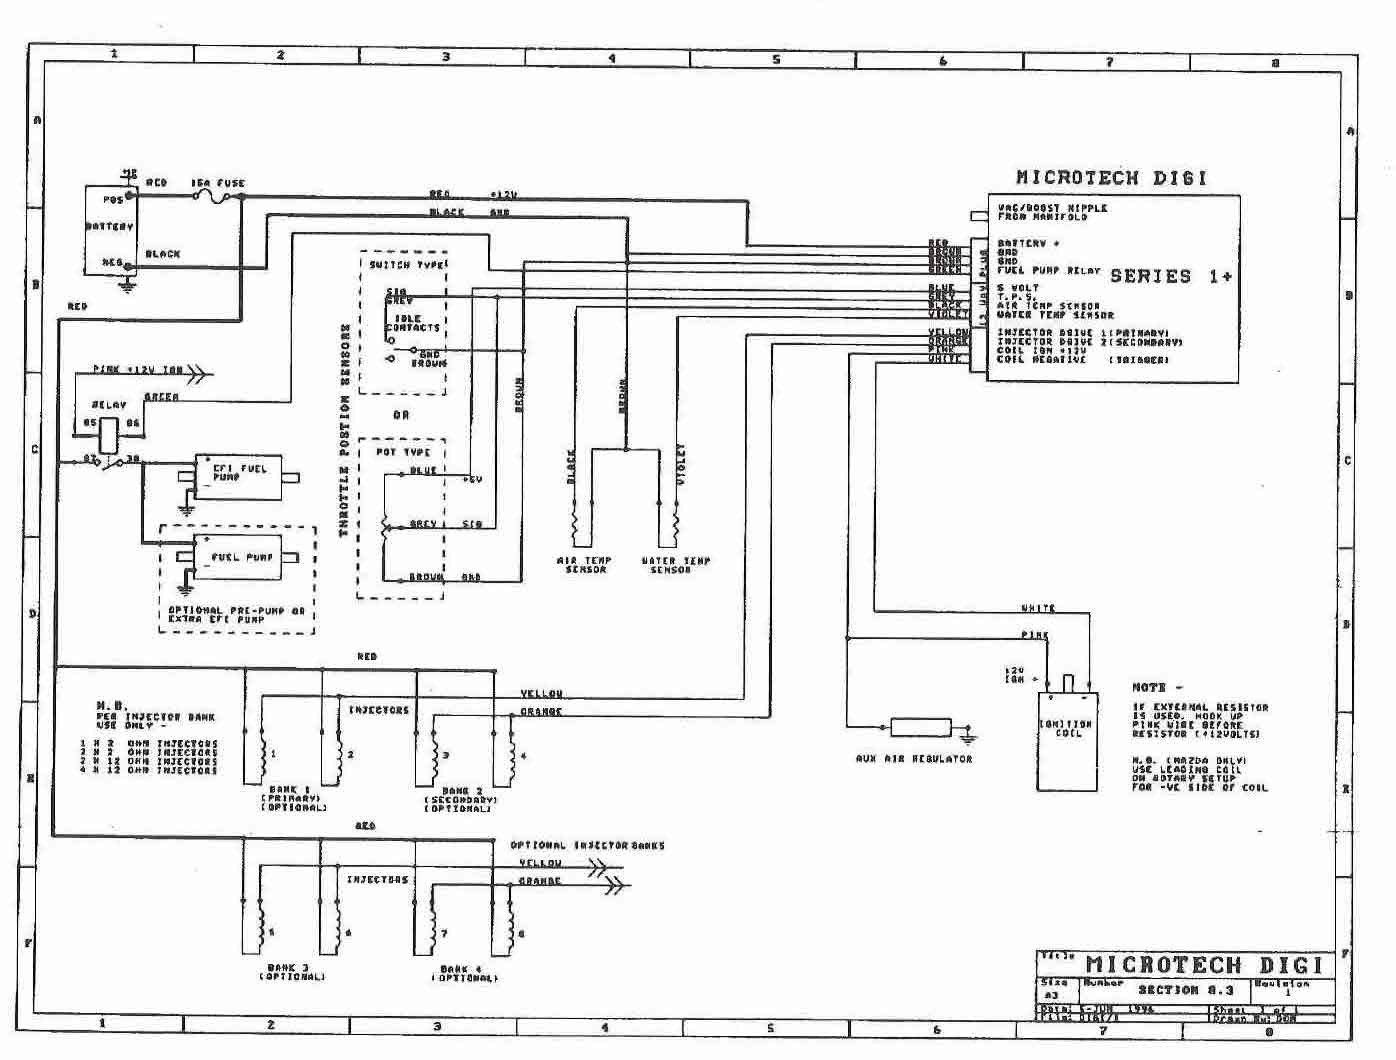 1985 Mazda Pickup Vacuum Diagram Wiring Schematic Archive Of Toyota Diagrams Free Picture Rx 7 Schematics Rh Thyl Co Uk